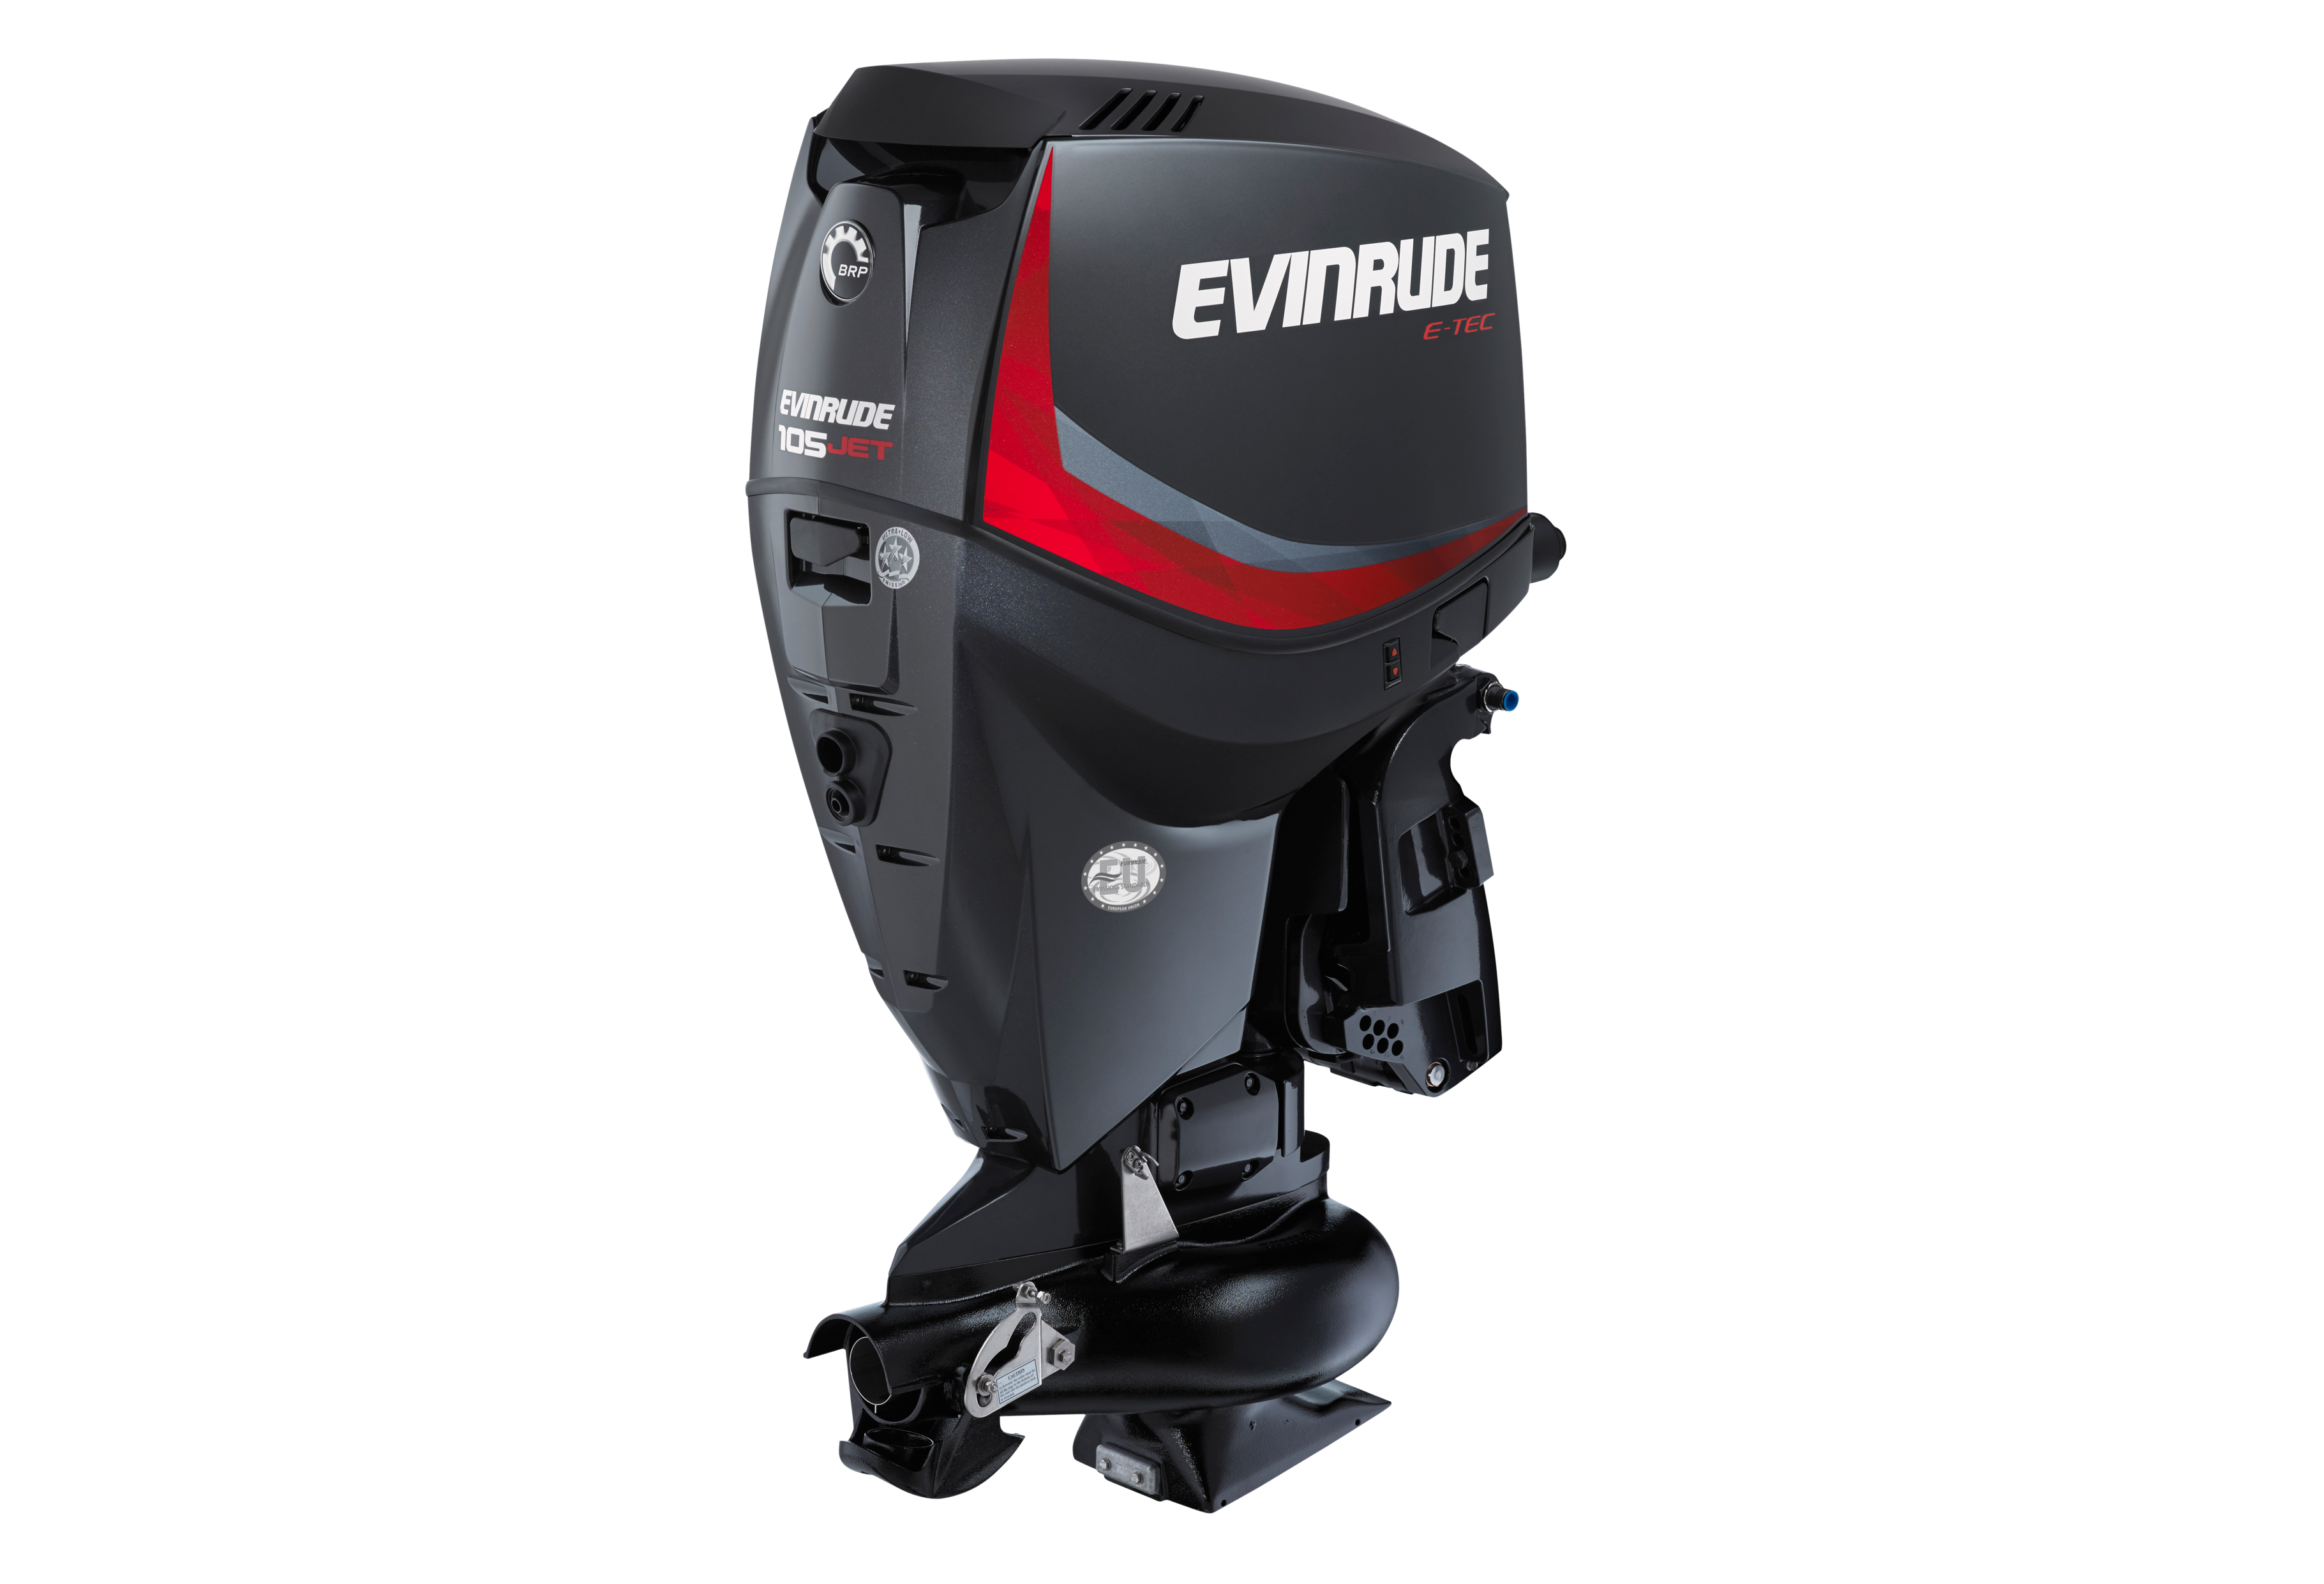 Jet Outboard Motor 2019 by Evinrude